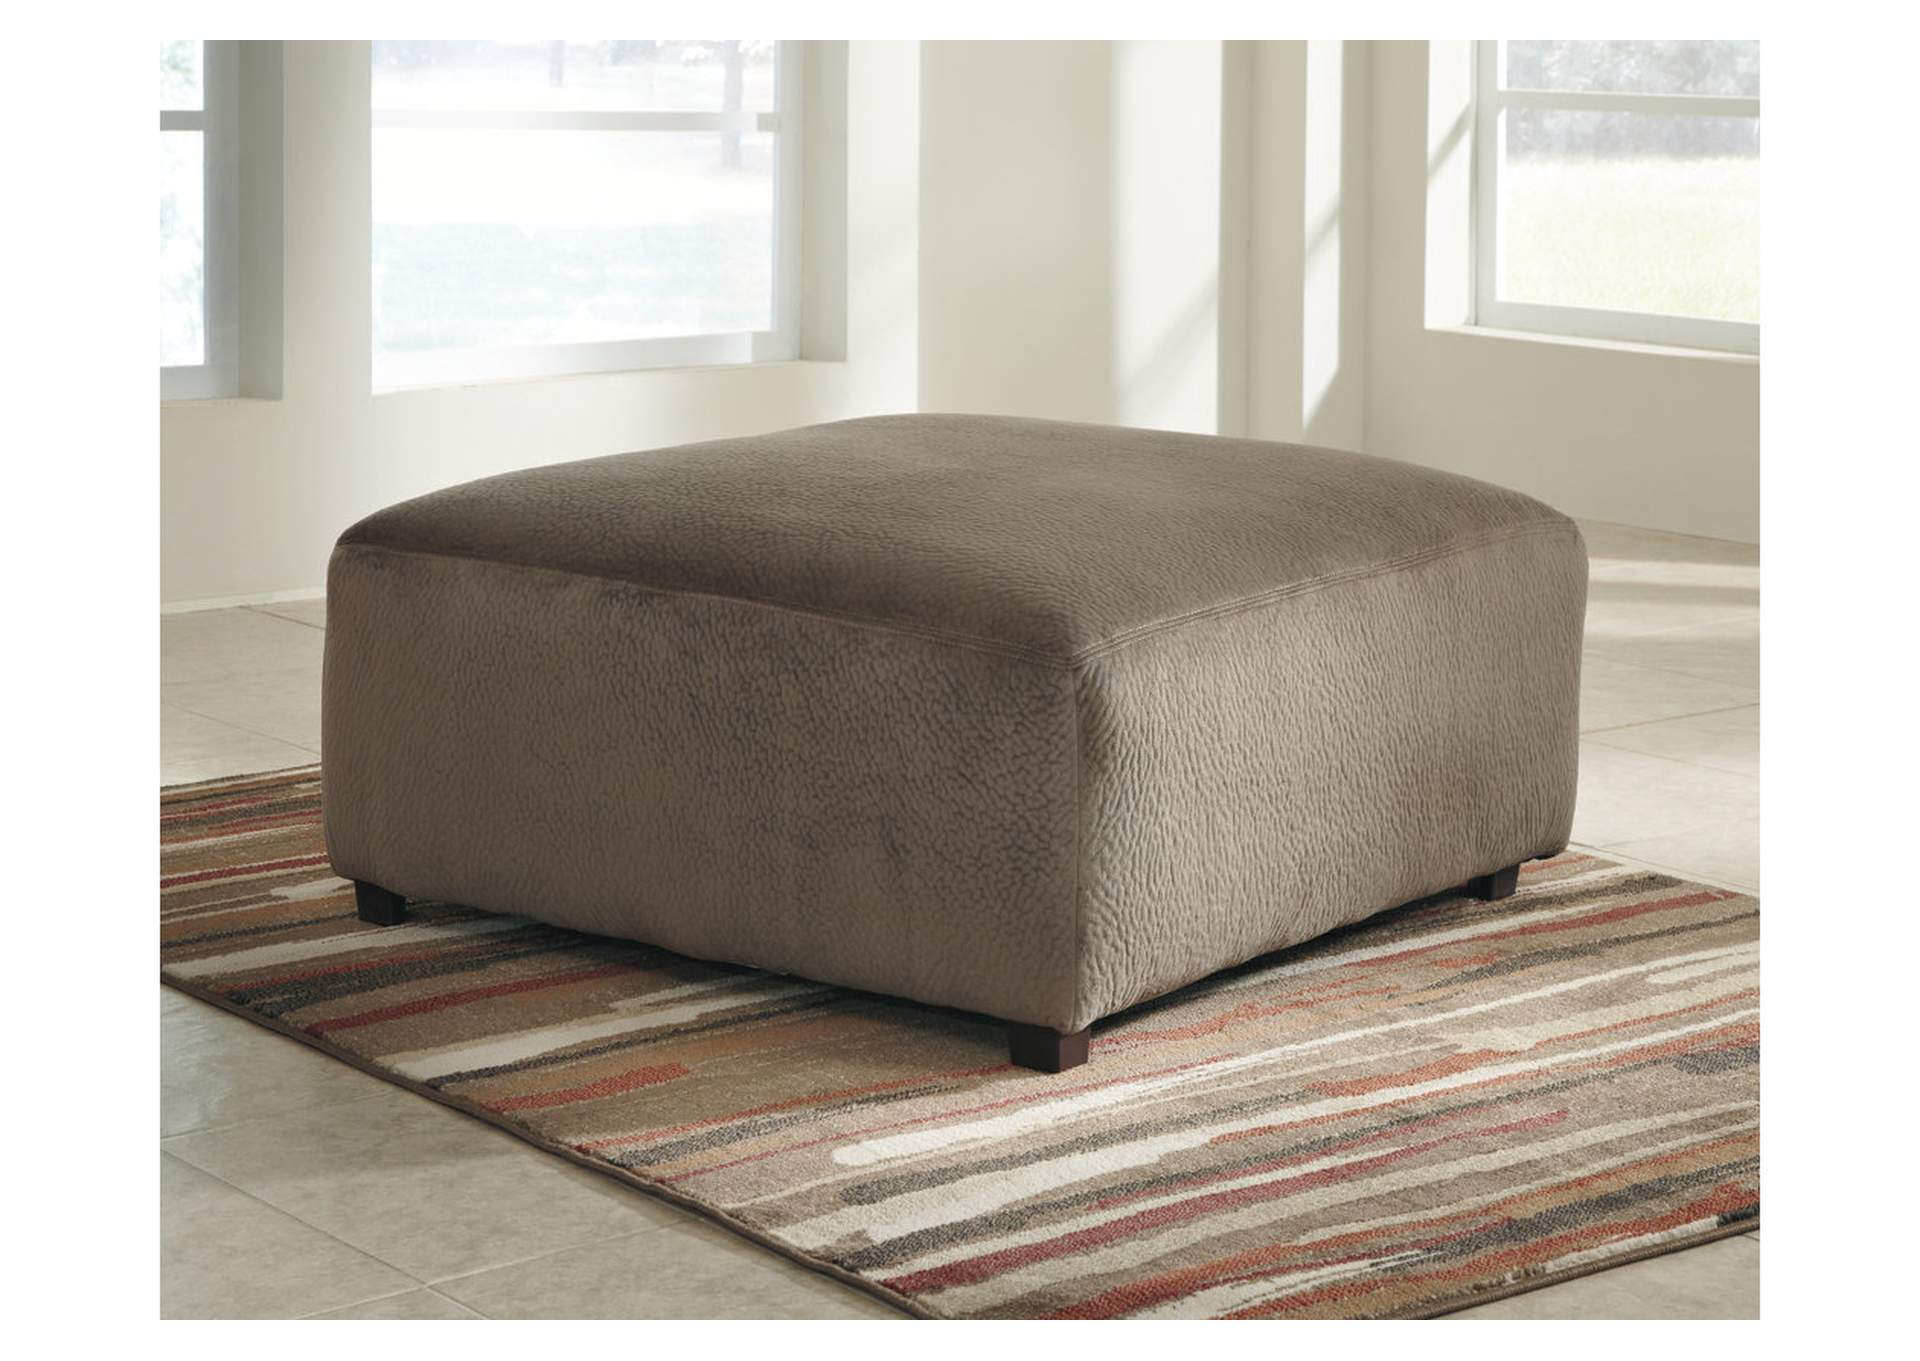 Jessa Place Dune Oversized Accent Ottoman,Signature Design by Ashley